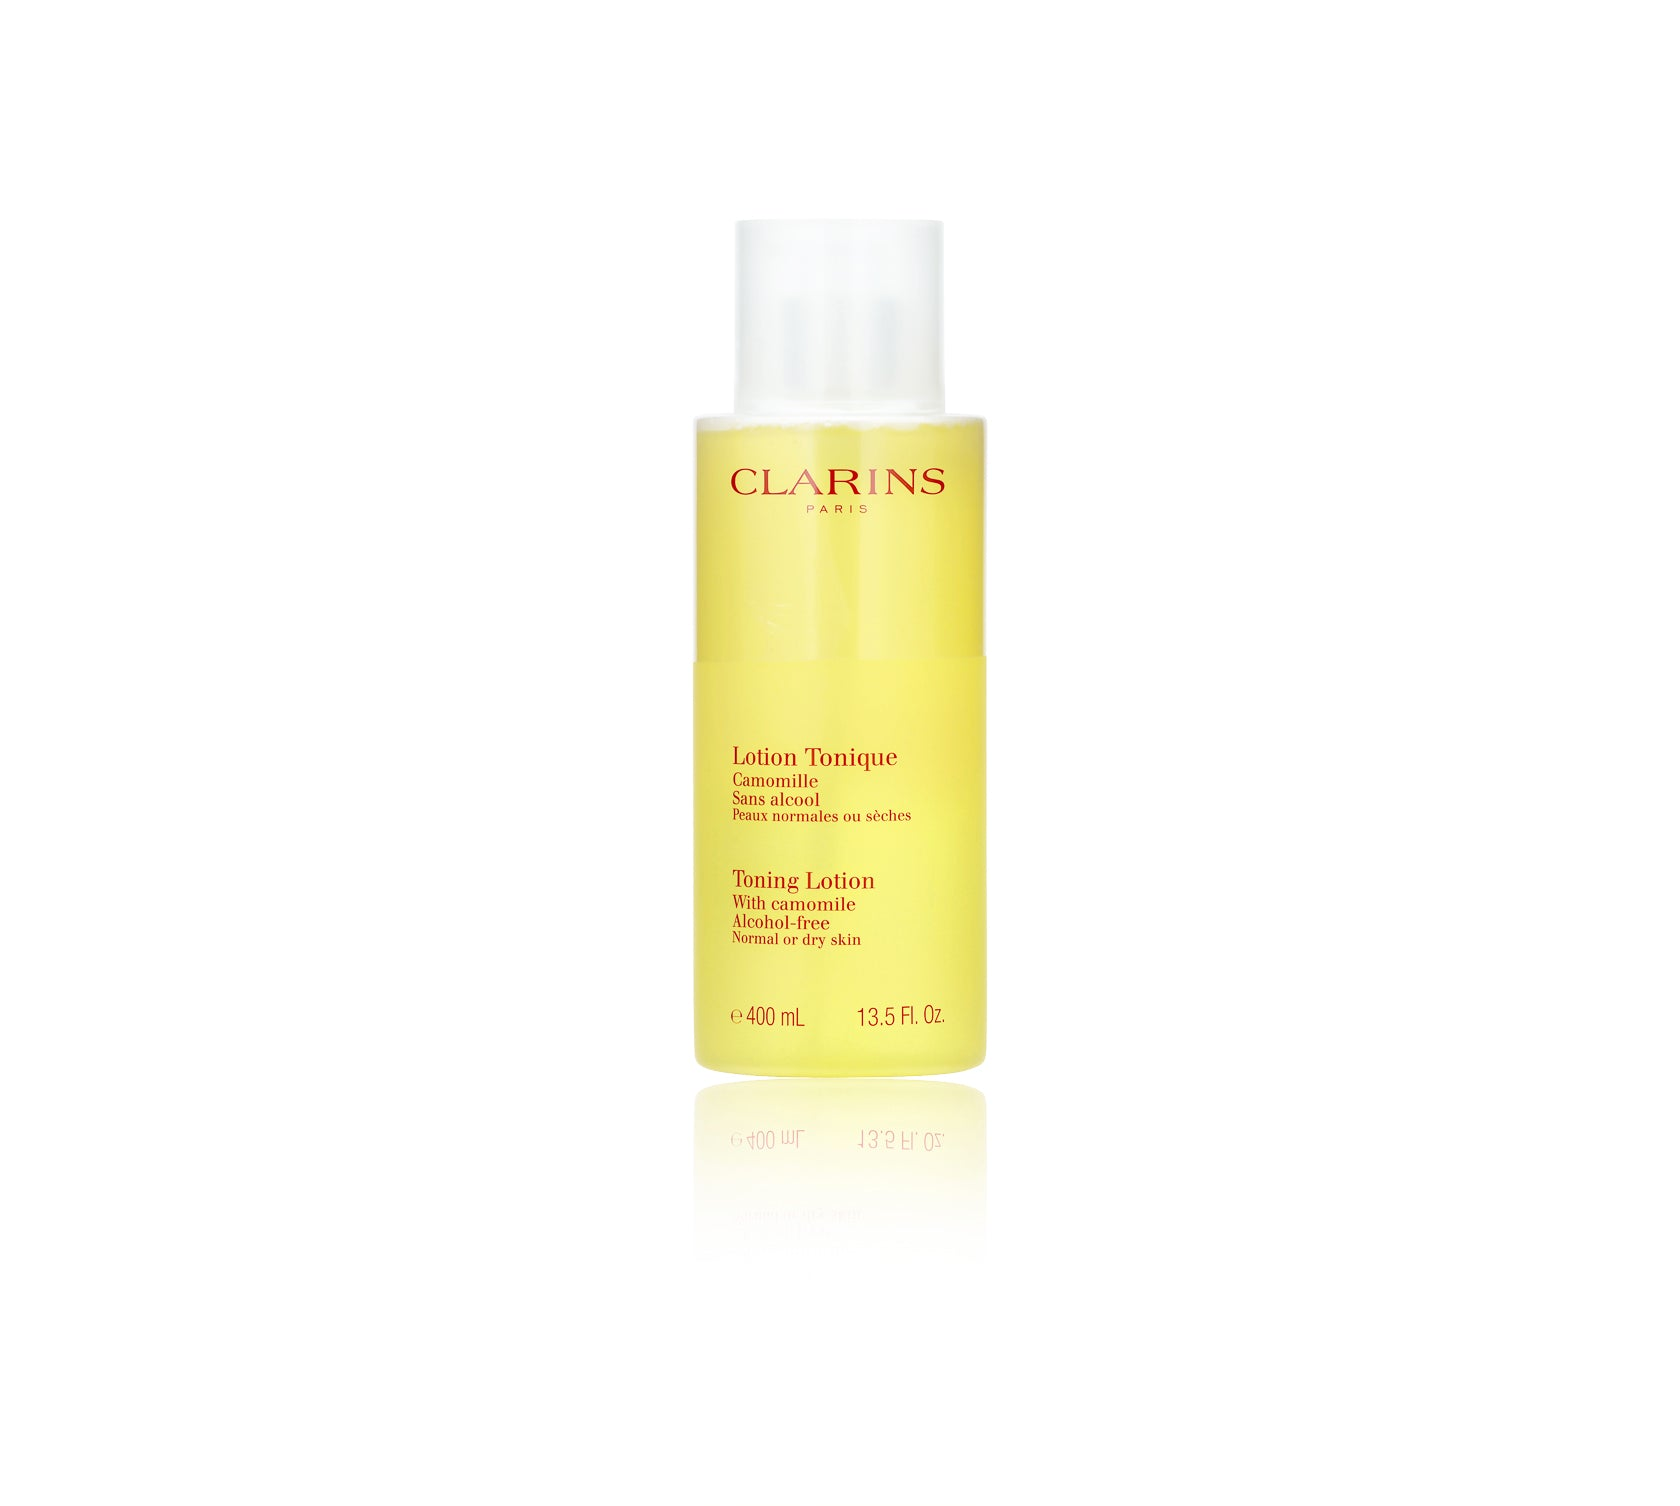 toning-lotion-alchol-free-with-camomile-normal-or-dry-skin